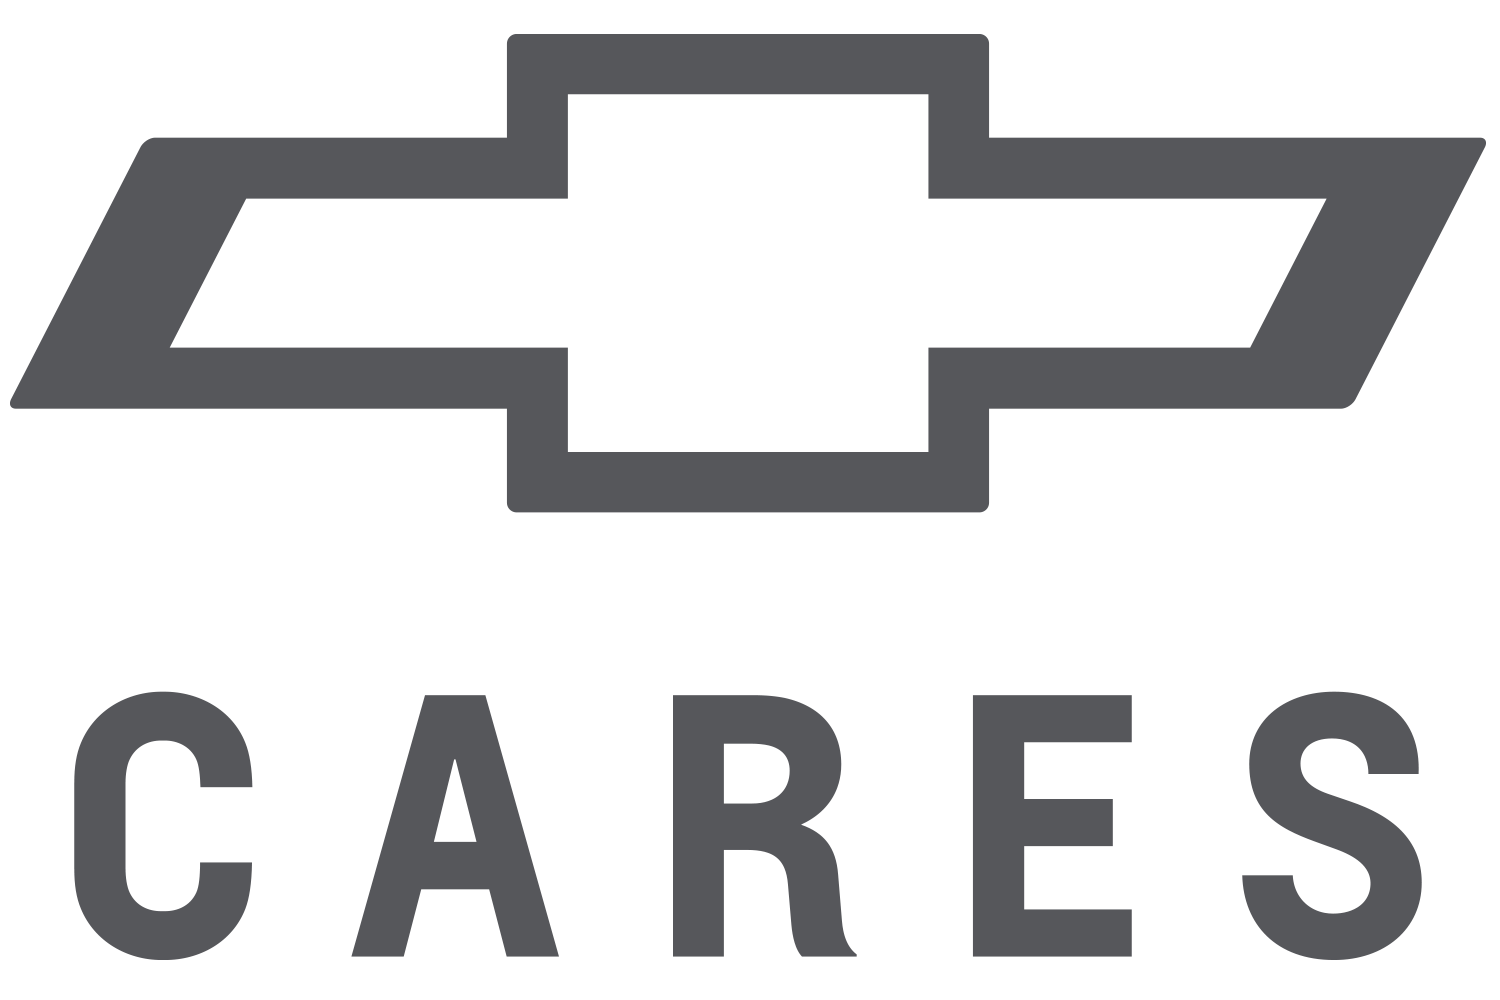 Logo de Chevrolet Cares